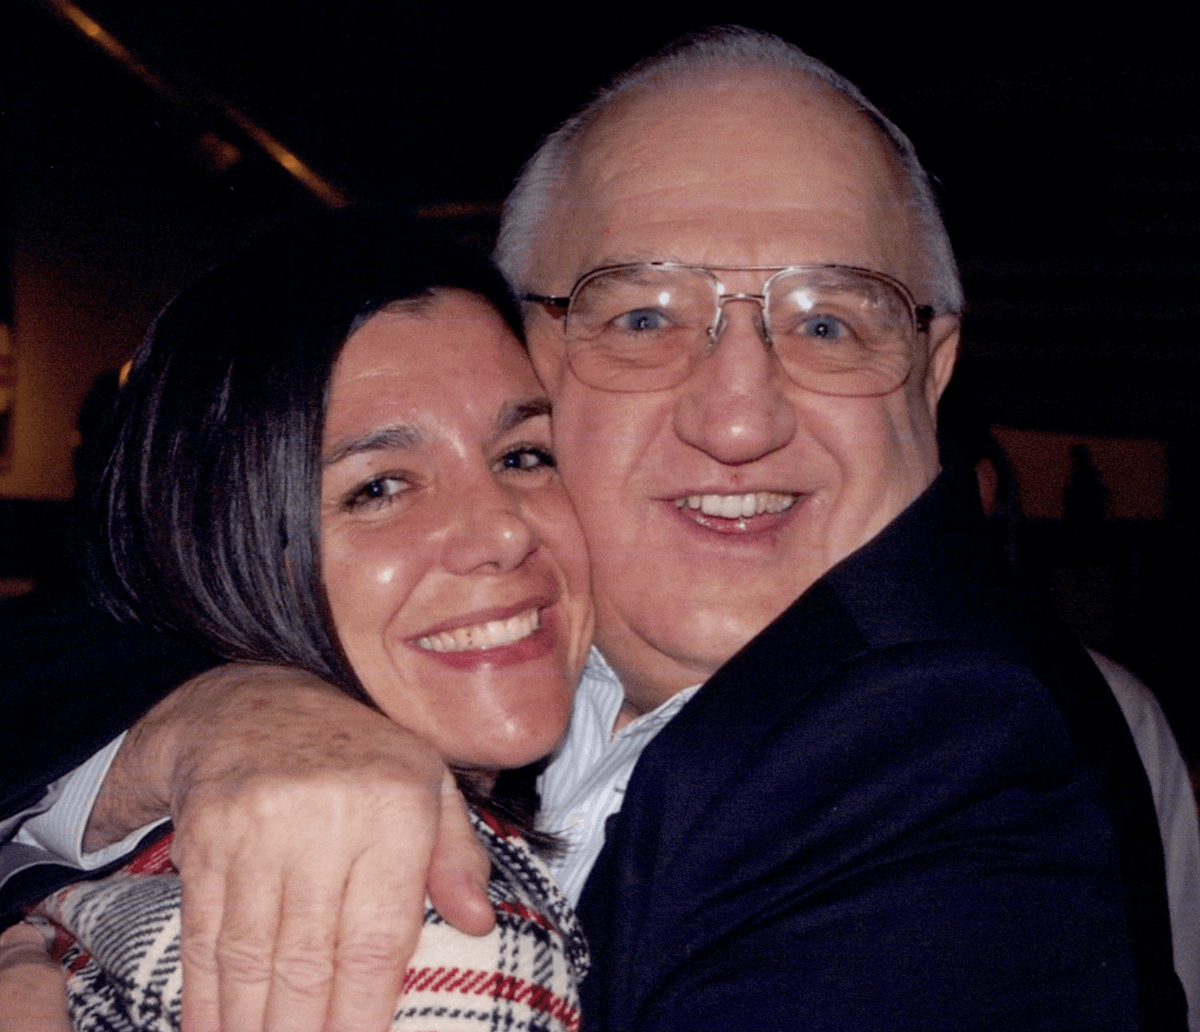 21. Sonja and her Dad